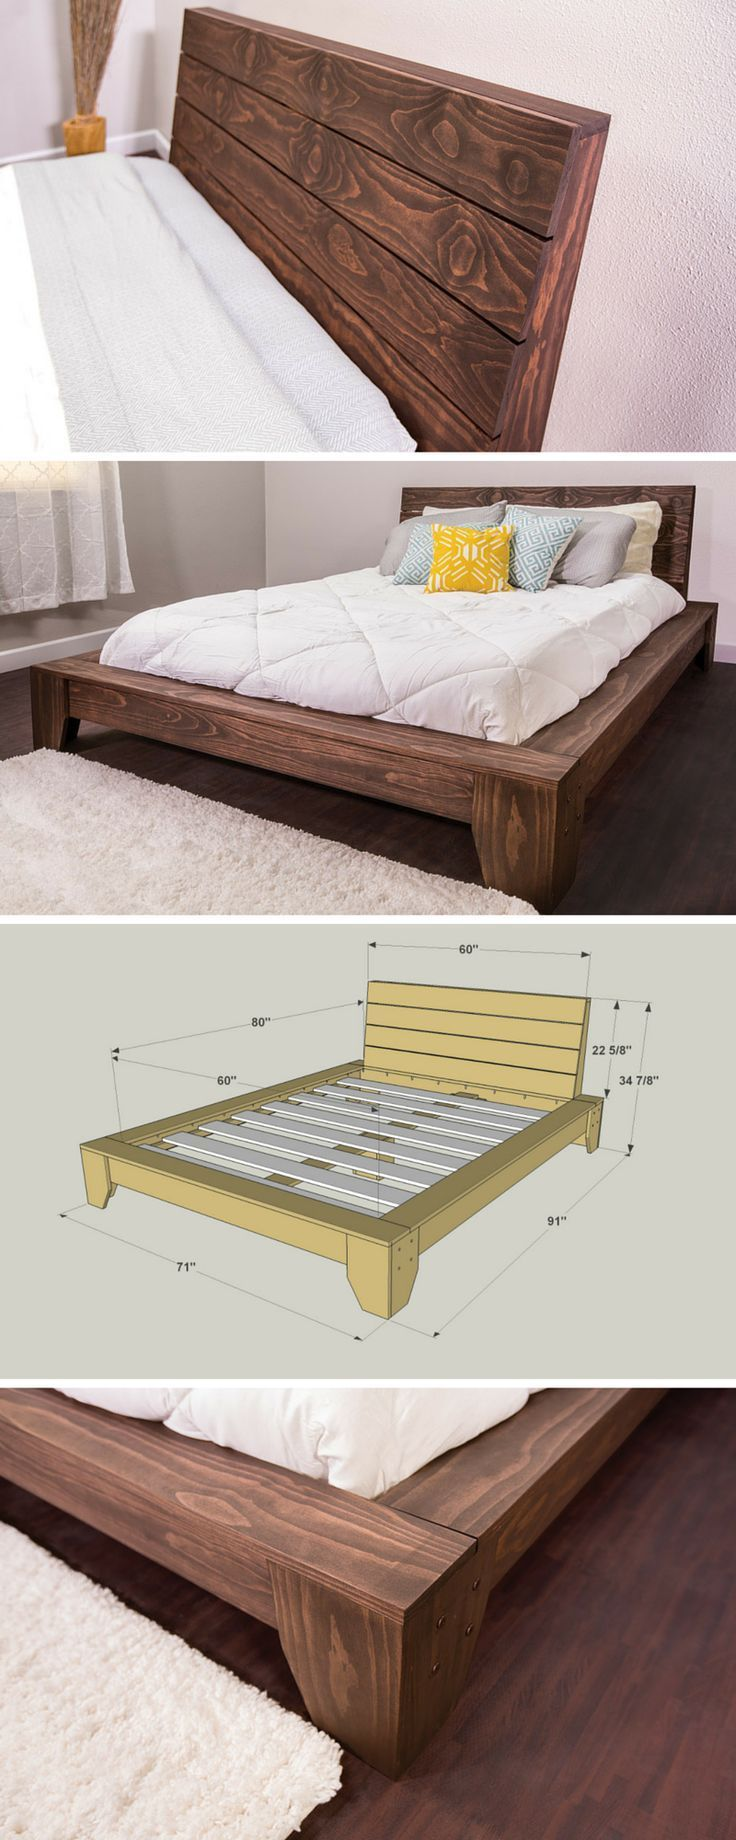 Build yourself this beautiful platform bed and youre sure to have ...